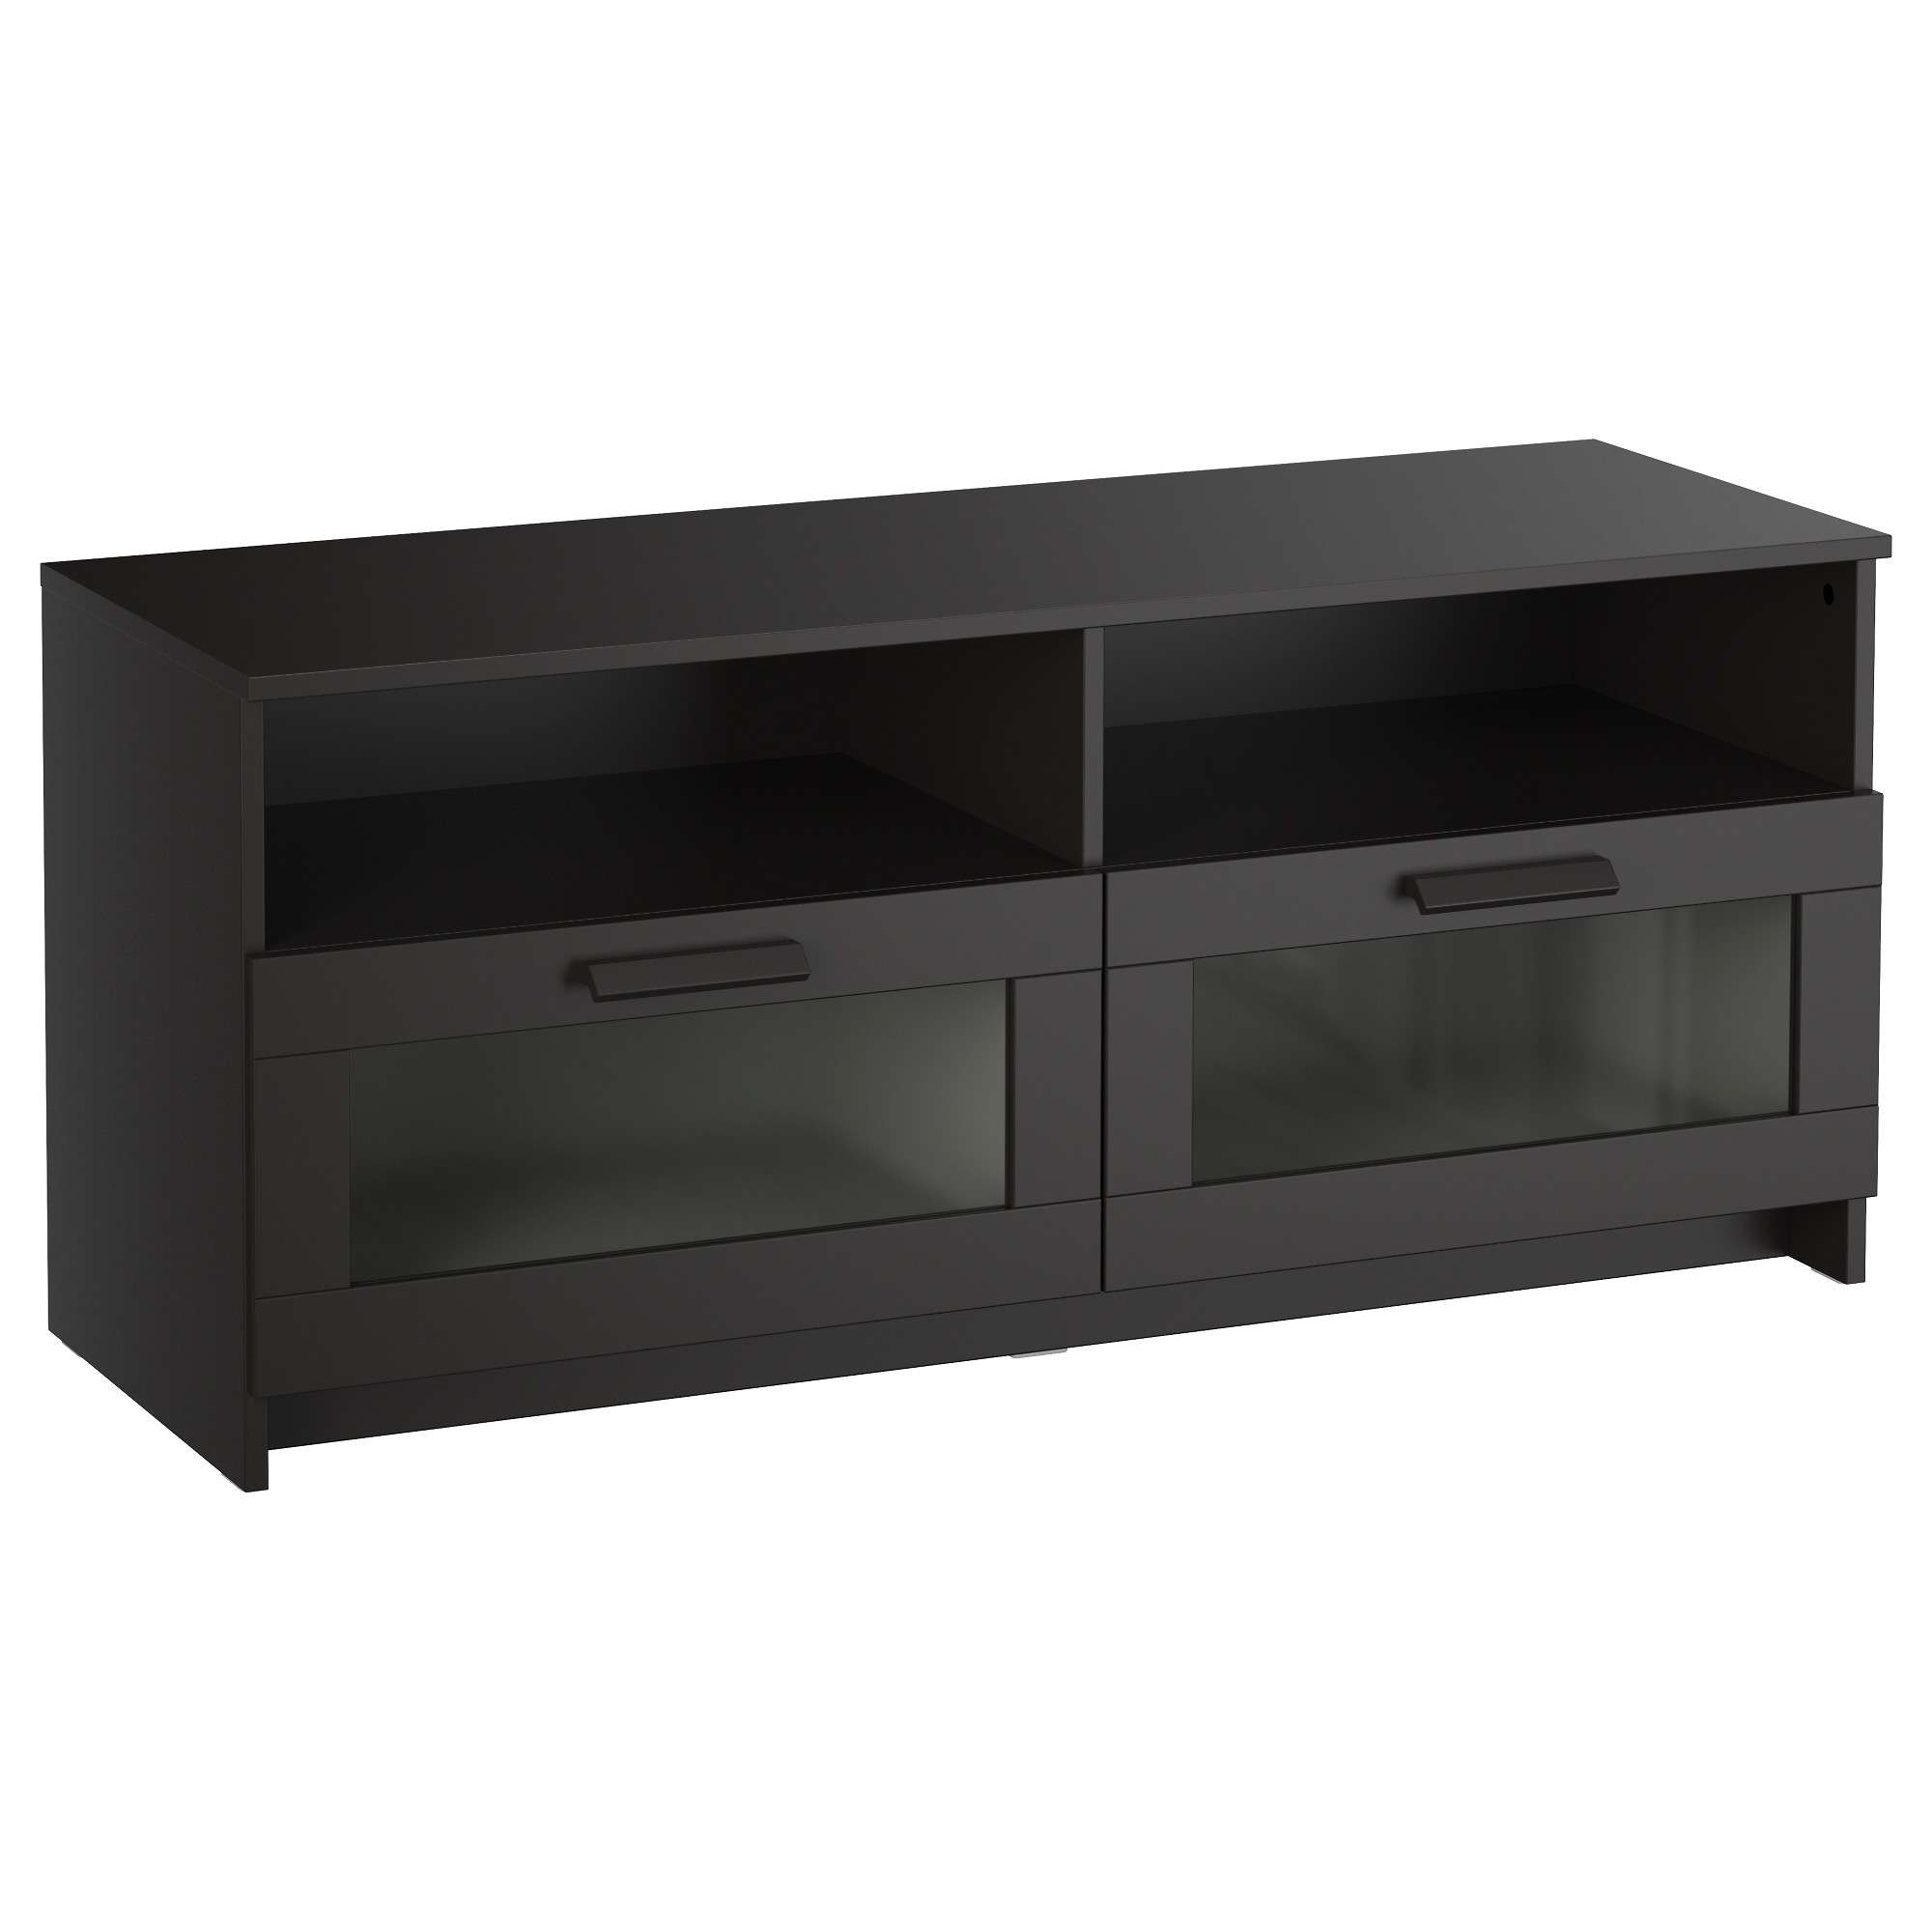 Tv Stands & Entertainment Centers – Ikea Regarding Tv Stands At Ikea (View 11 of 15)